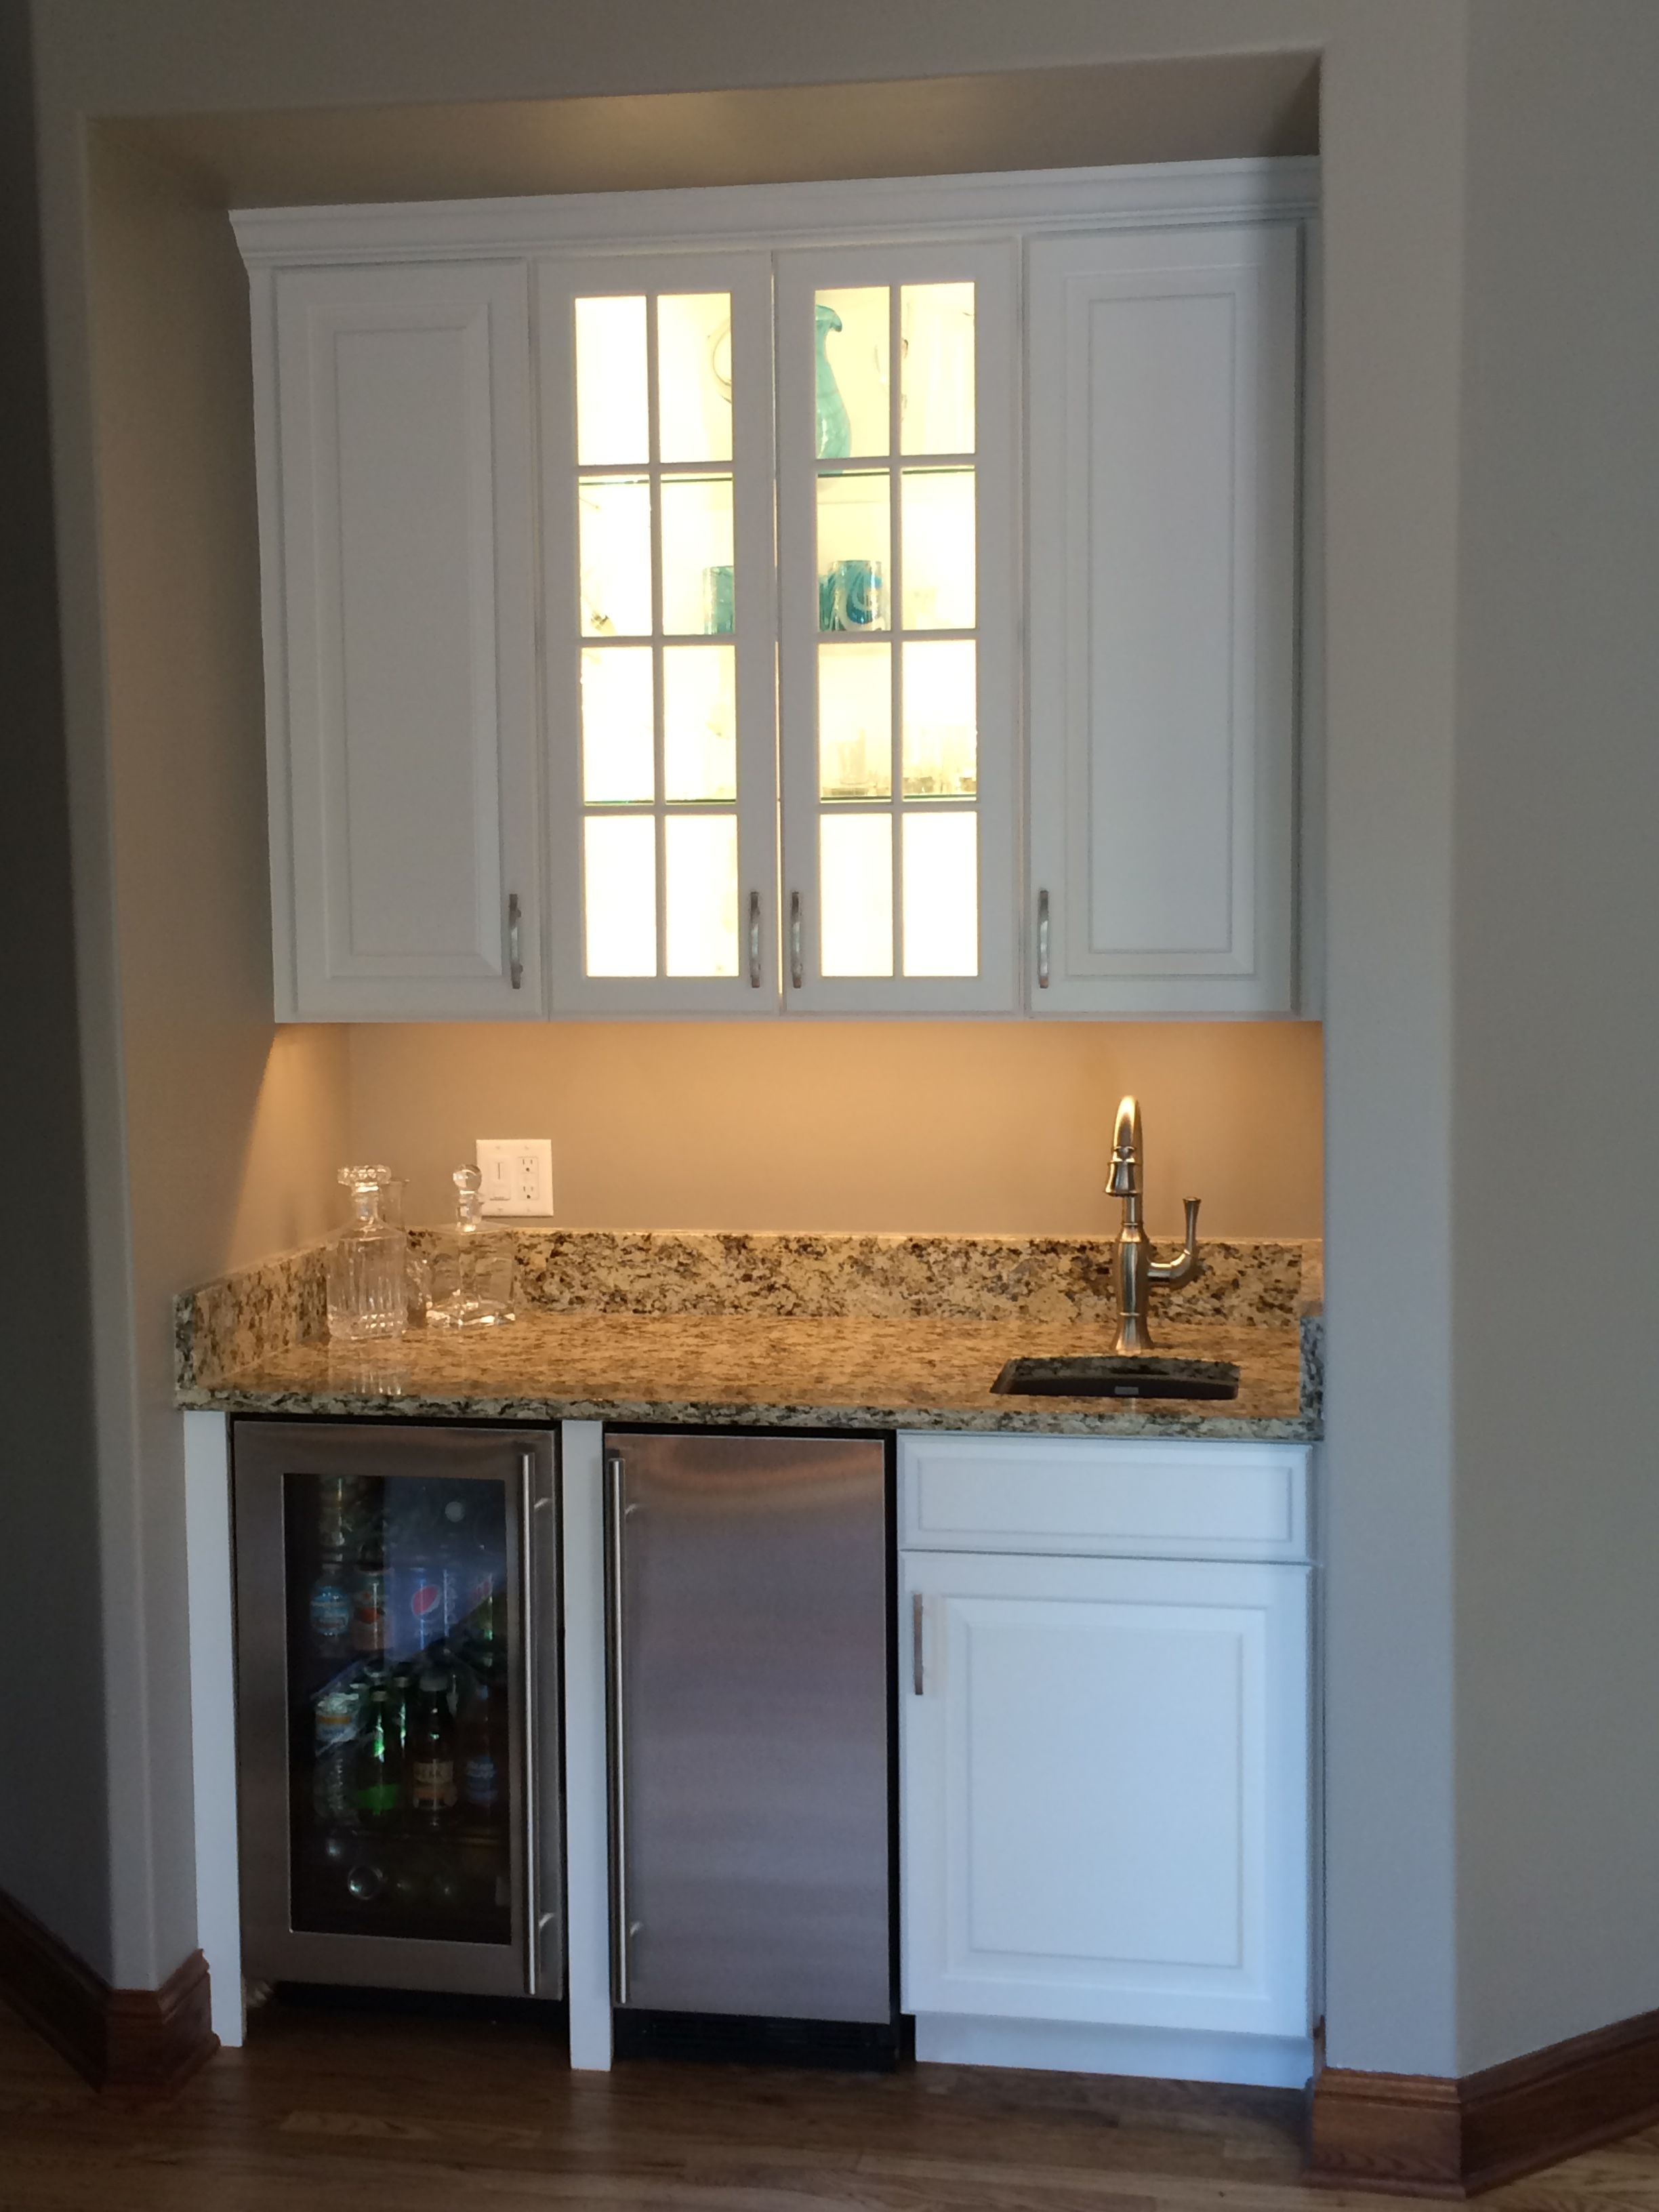 Kitchen Wet Bar W Beverage Center And Built In Ice Maker Great For Entertaining